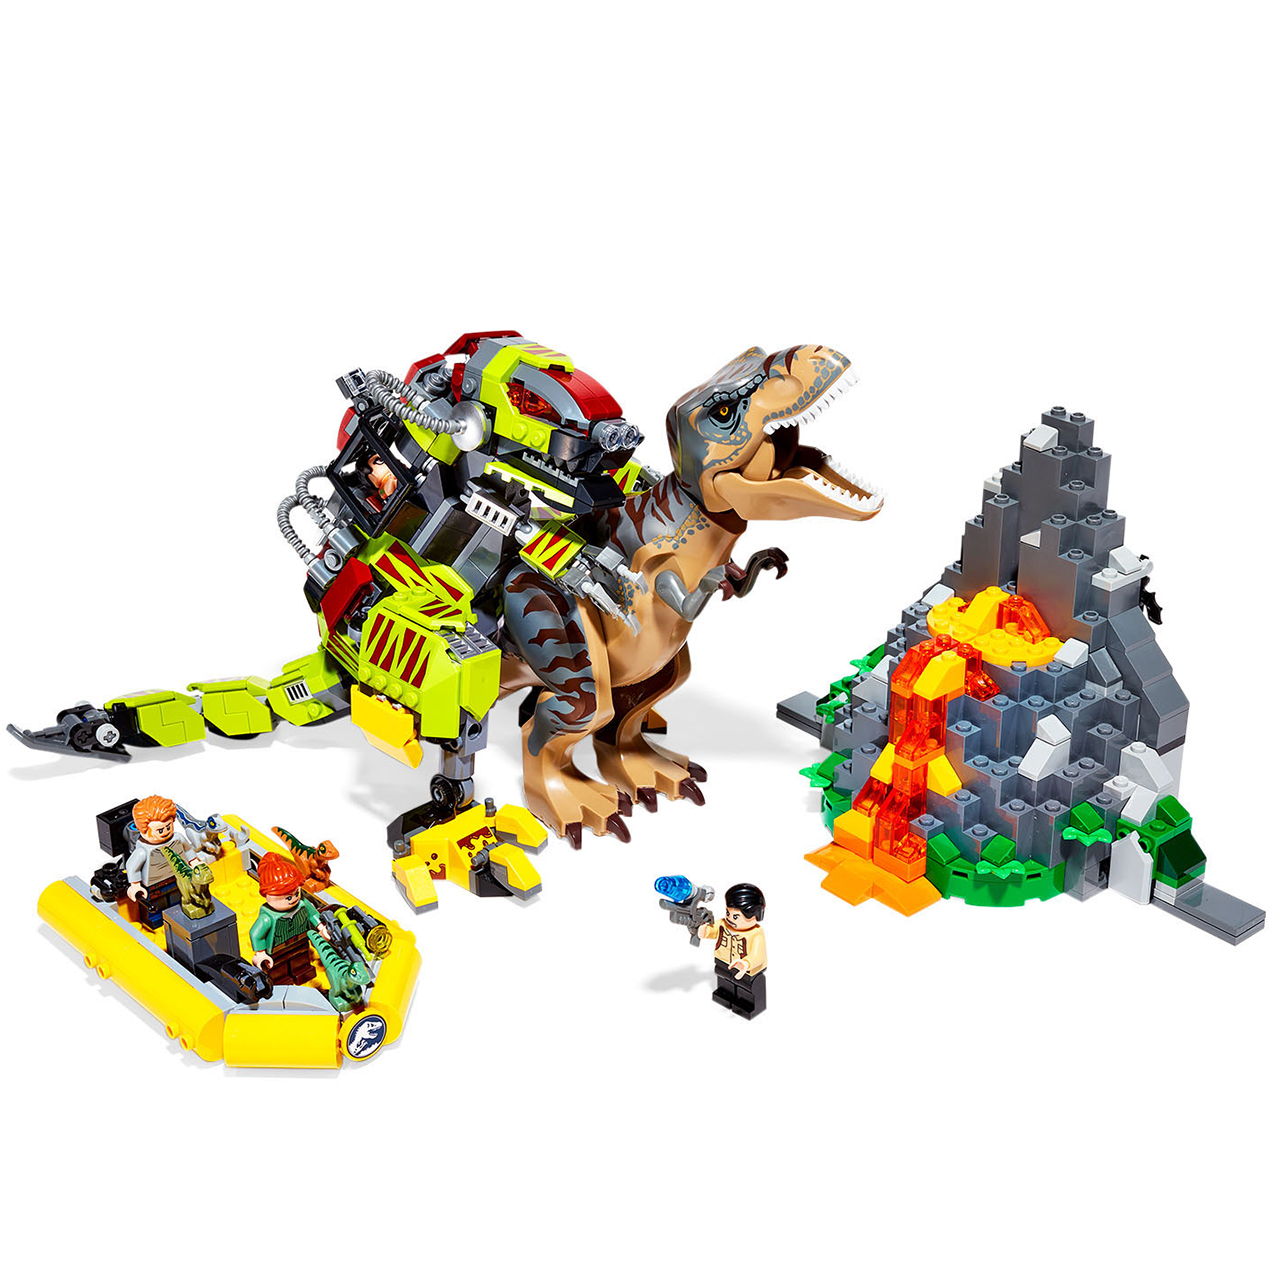 LEGO Jurassic World T. rex vs. Dino-Mech Battle